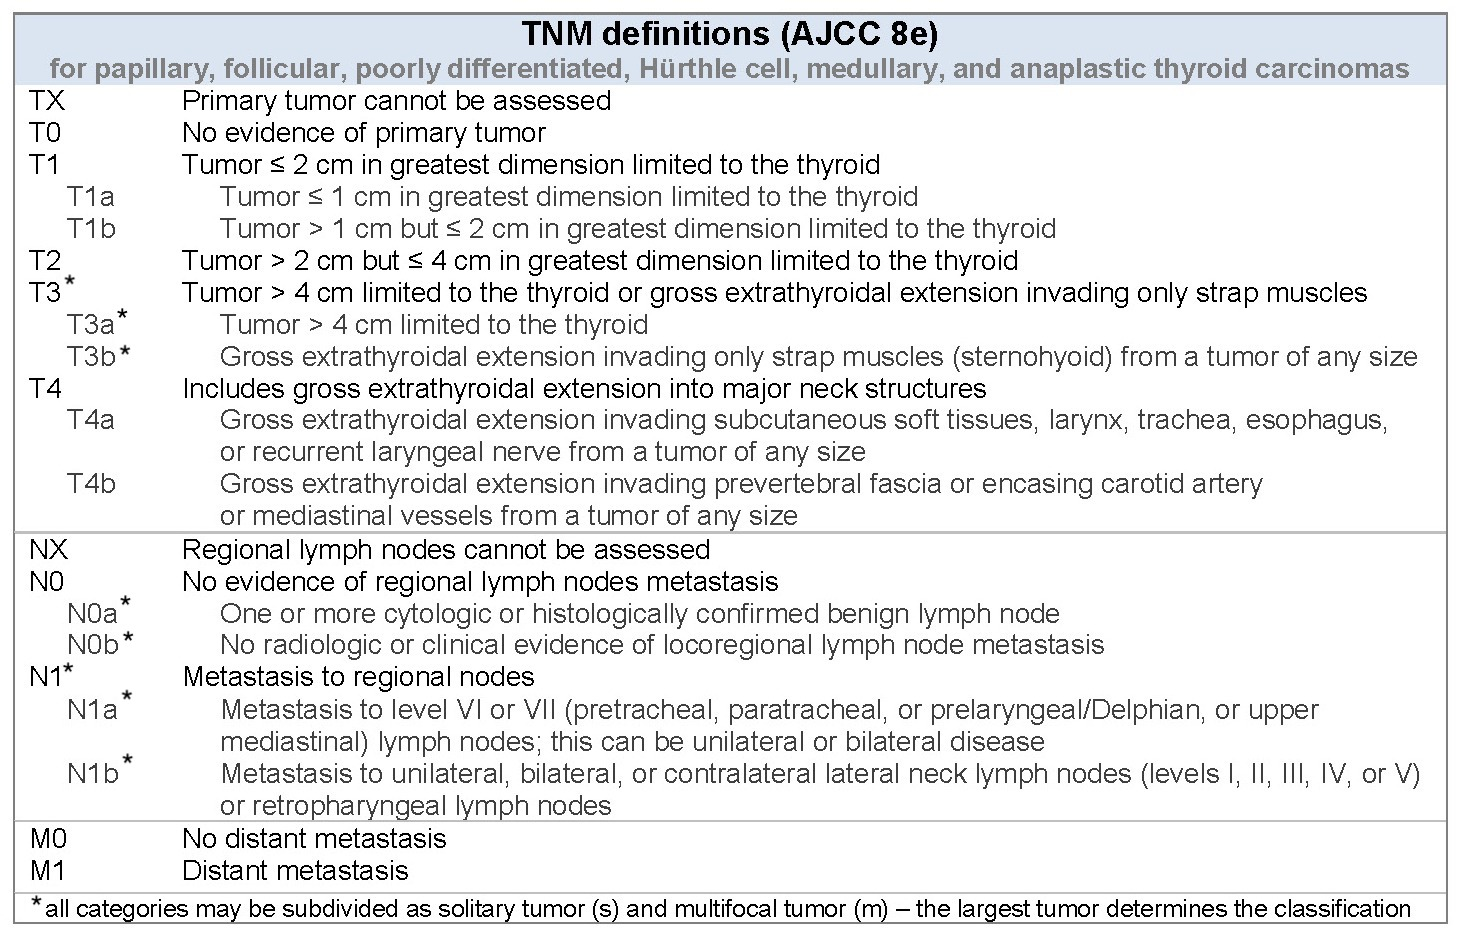 Pathology Outlines - AJCC / TNM staging